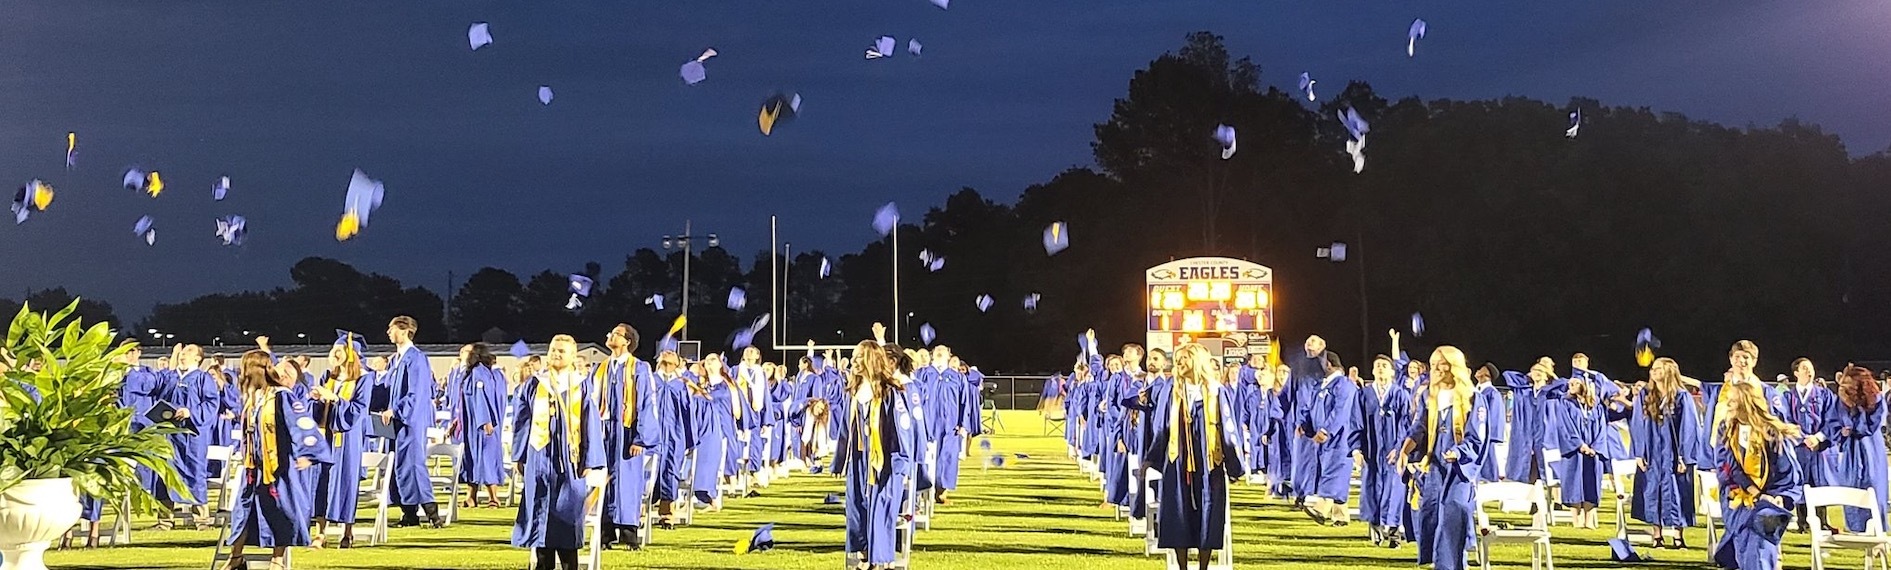 Graduation Hats Flying